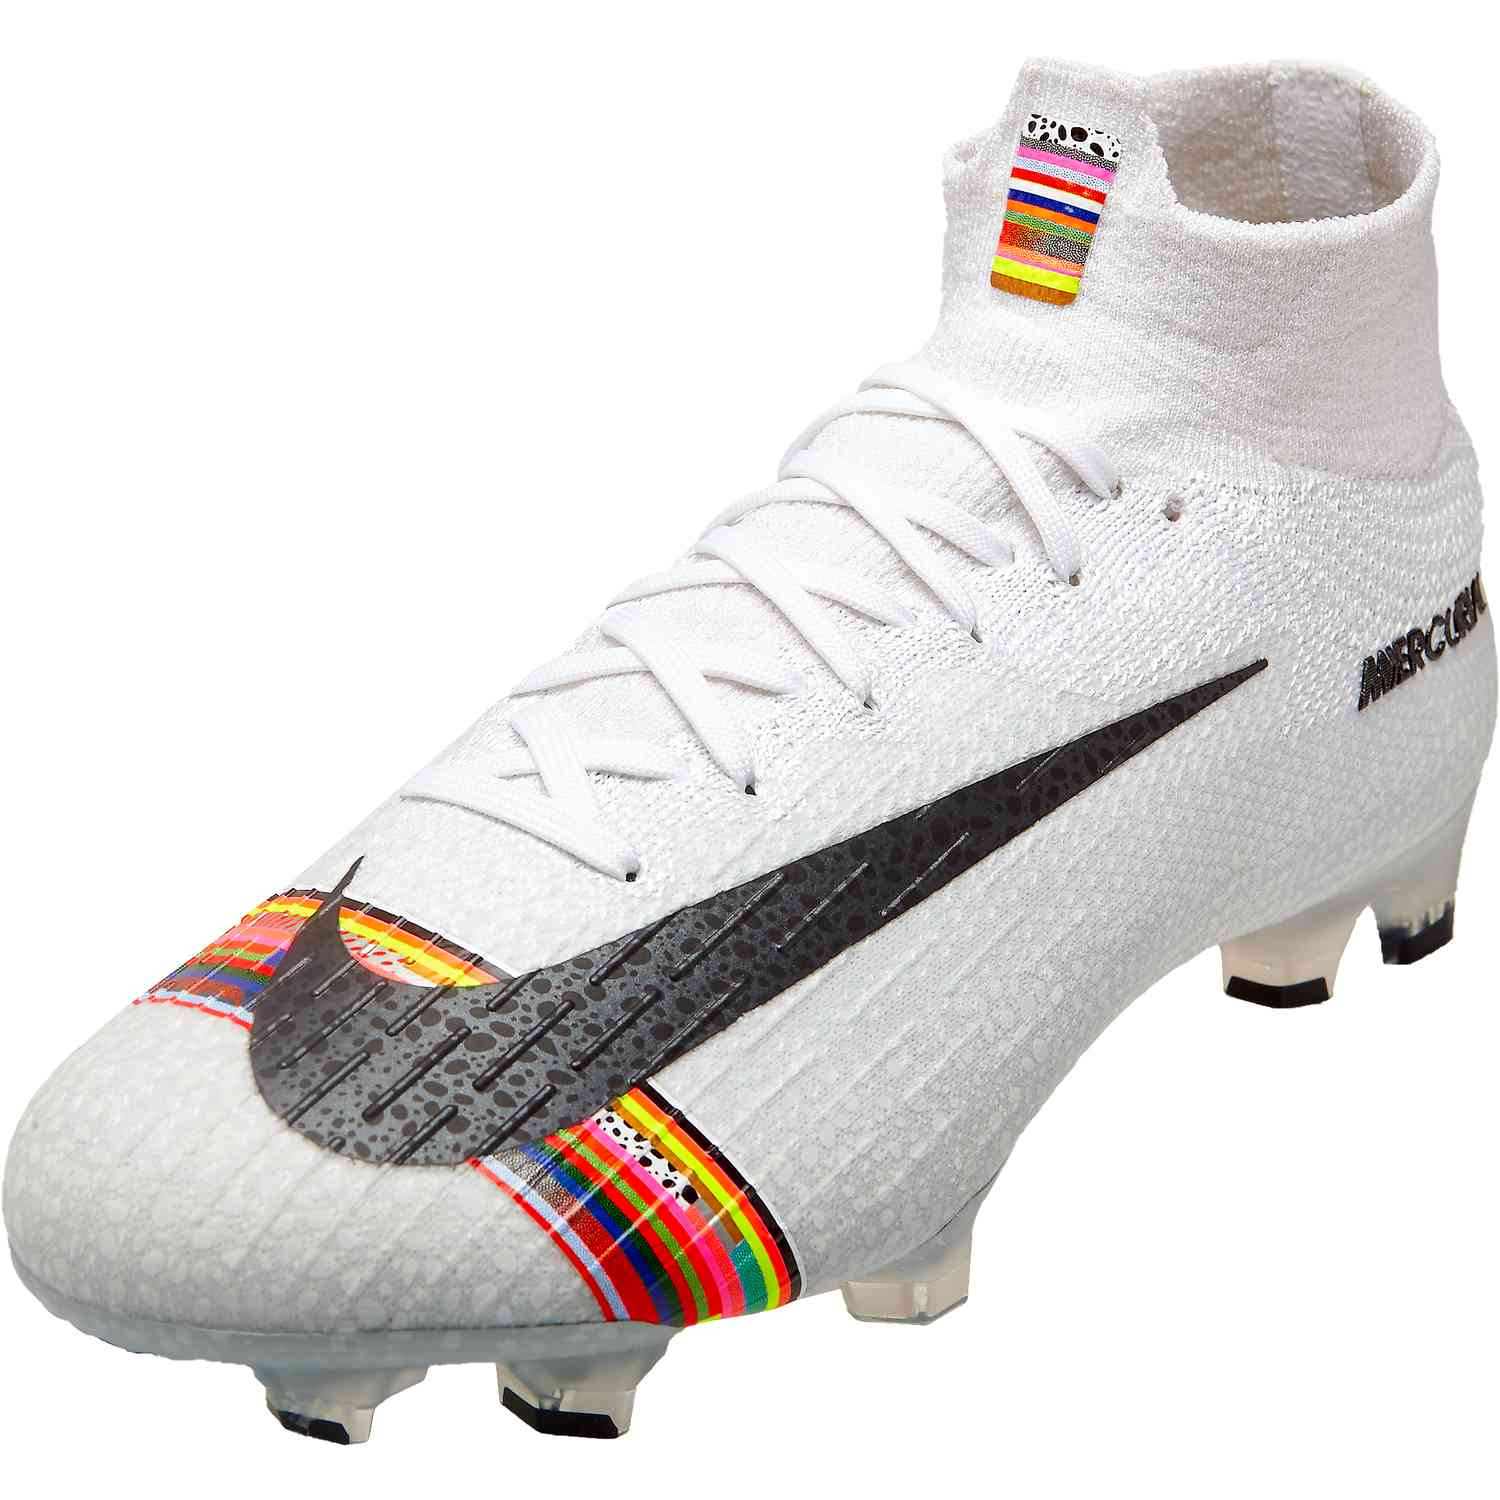 separation shoes 02d3c 9a58a Nike Mercurial Superfly 360 Elite SE FG – Level Up